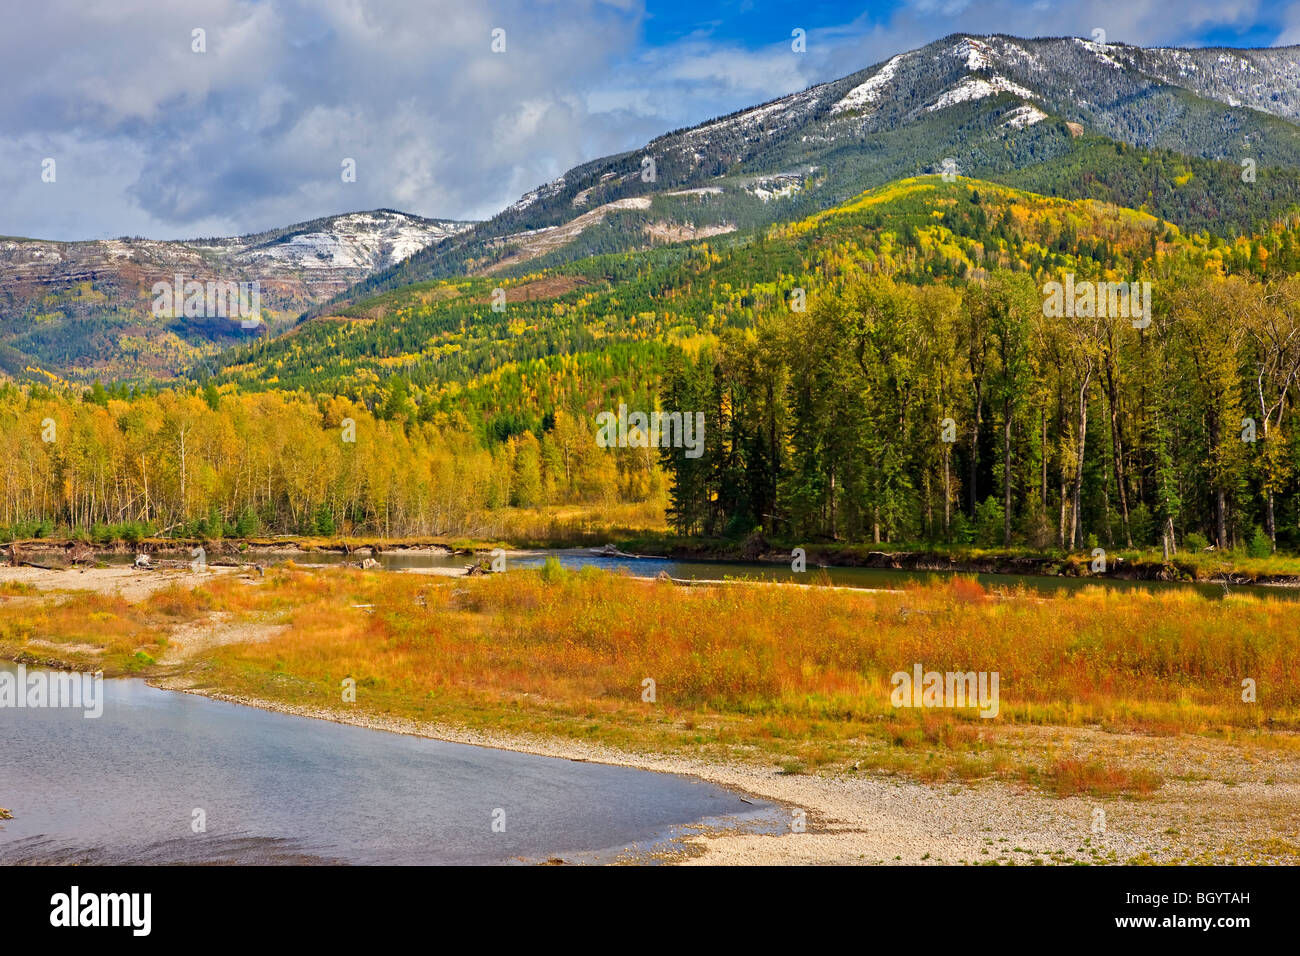 Elk River and the Mount Broadwood Heritage Conservation Area, East Kootenay, British Columbia, Canada. - Stock Image